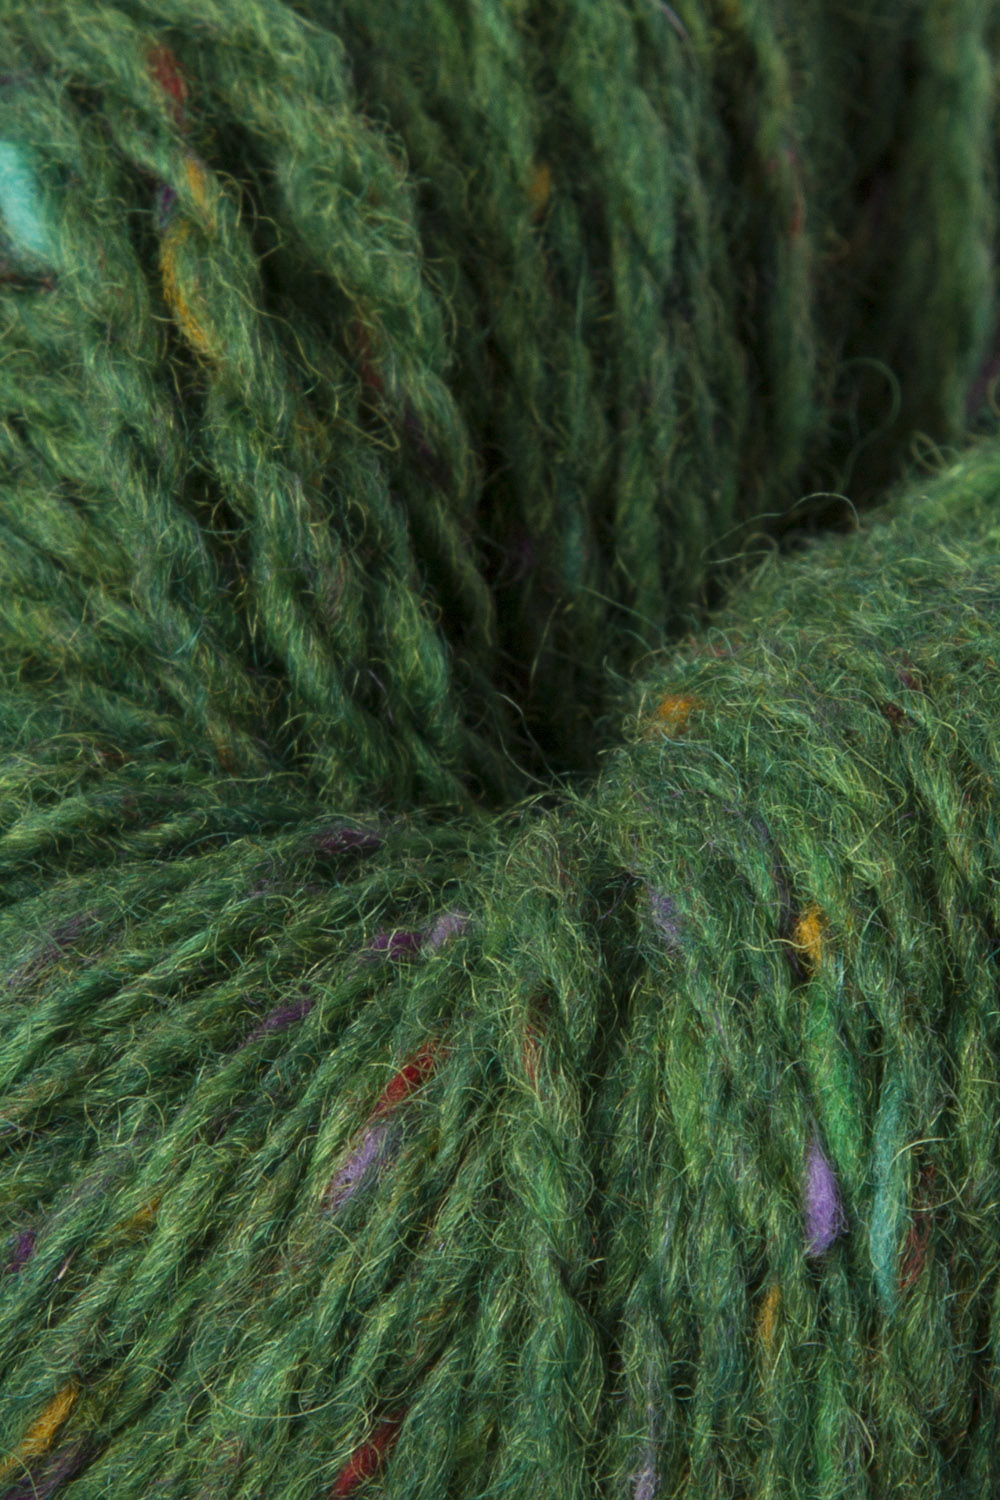 Donegal Wool Spinning Company Knitting Wool - 100g Hanks